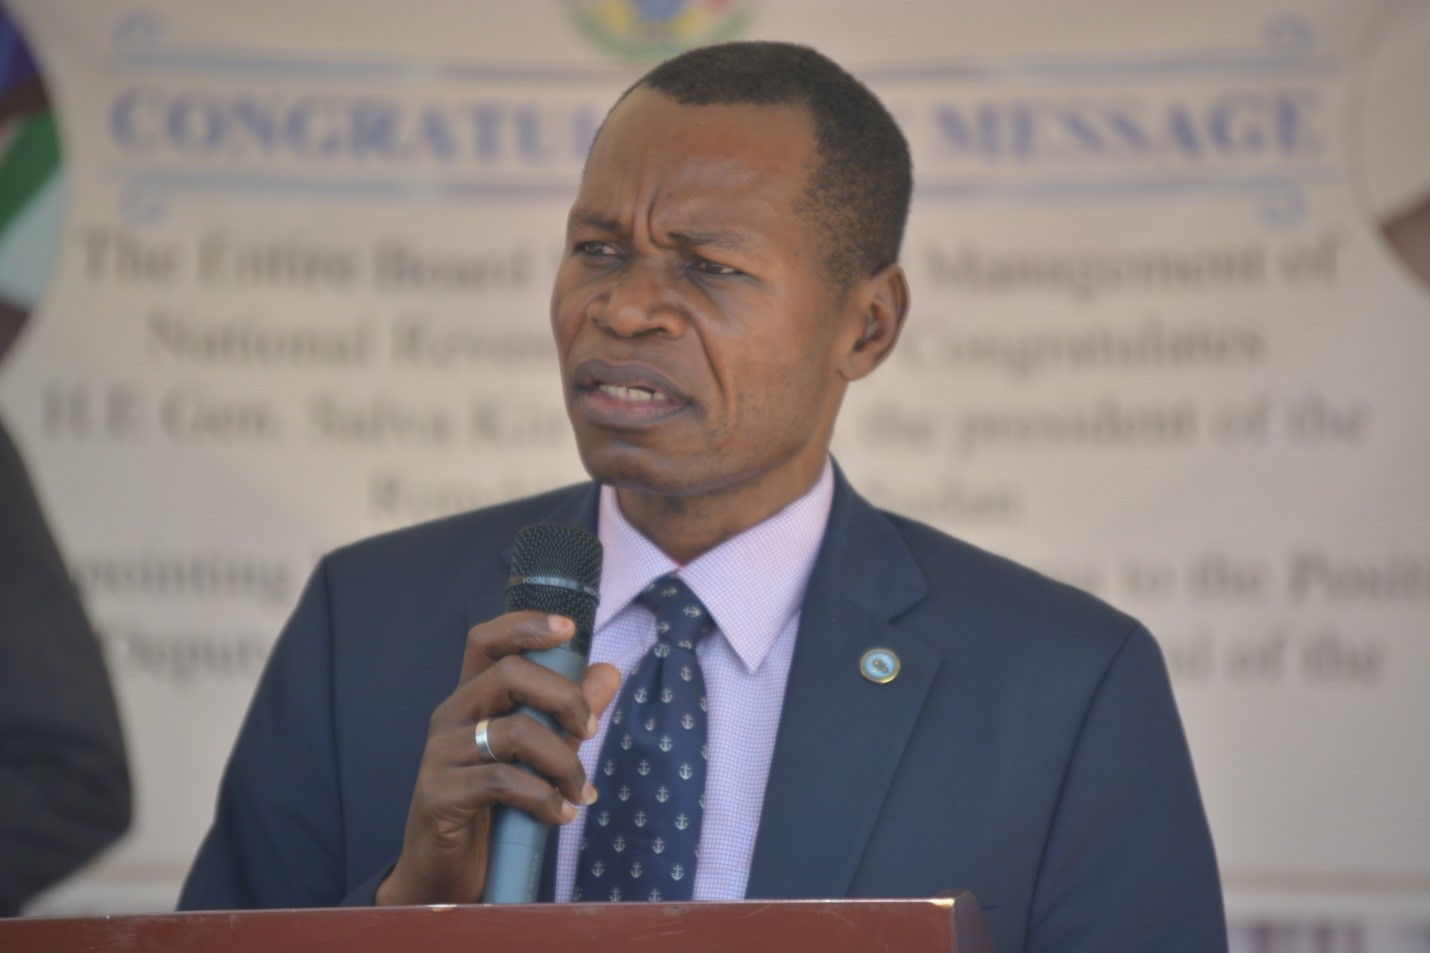 Bakosoro influence splitting NMC, claims party official